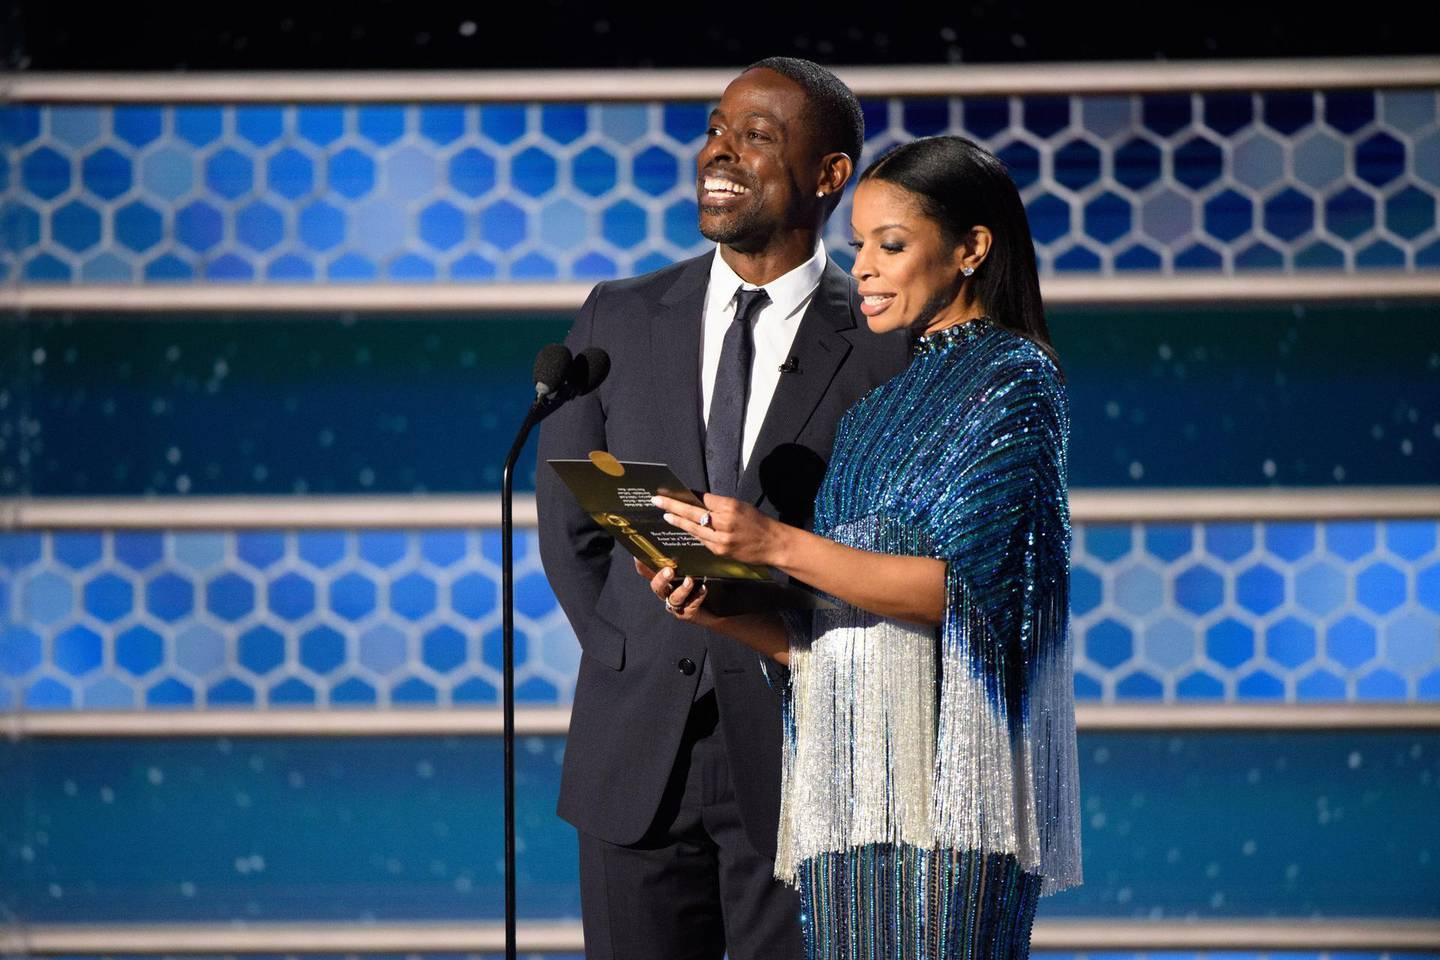 epa09044012 Handout image released by the Hollywood Foreign Press Association showing Sterling K. Brown and Susan Kelechi Watson present Best Television Series - Musical or Comedy during the 78th annual Golden Globe Awards ceremony at the Beverly Hilton Hotel, in Beverly Hills, California, USA, 28 February 2021.  EPA/HFPA / HANDOUT EDITORIAL USE ONLY, NO SALES